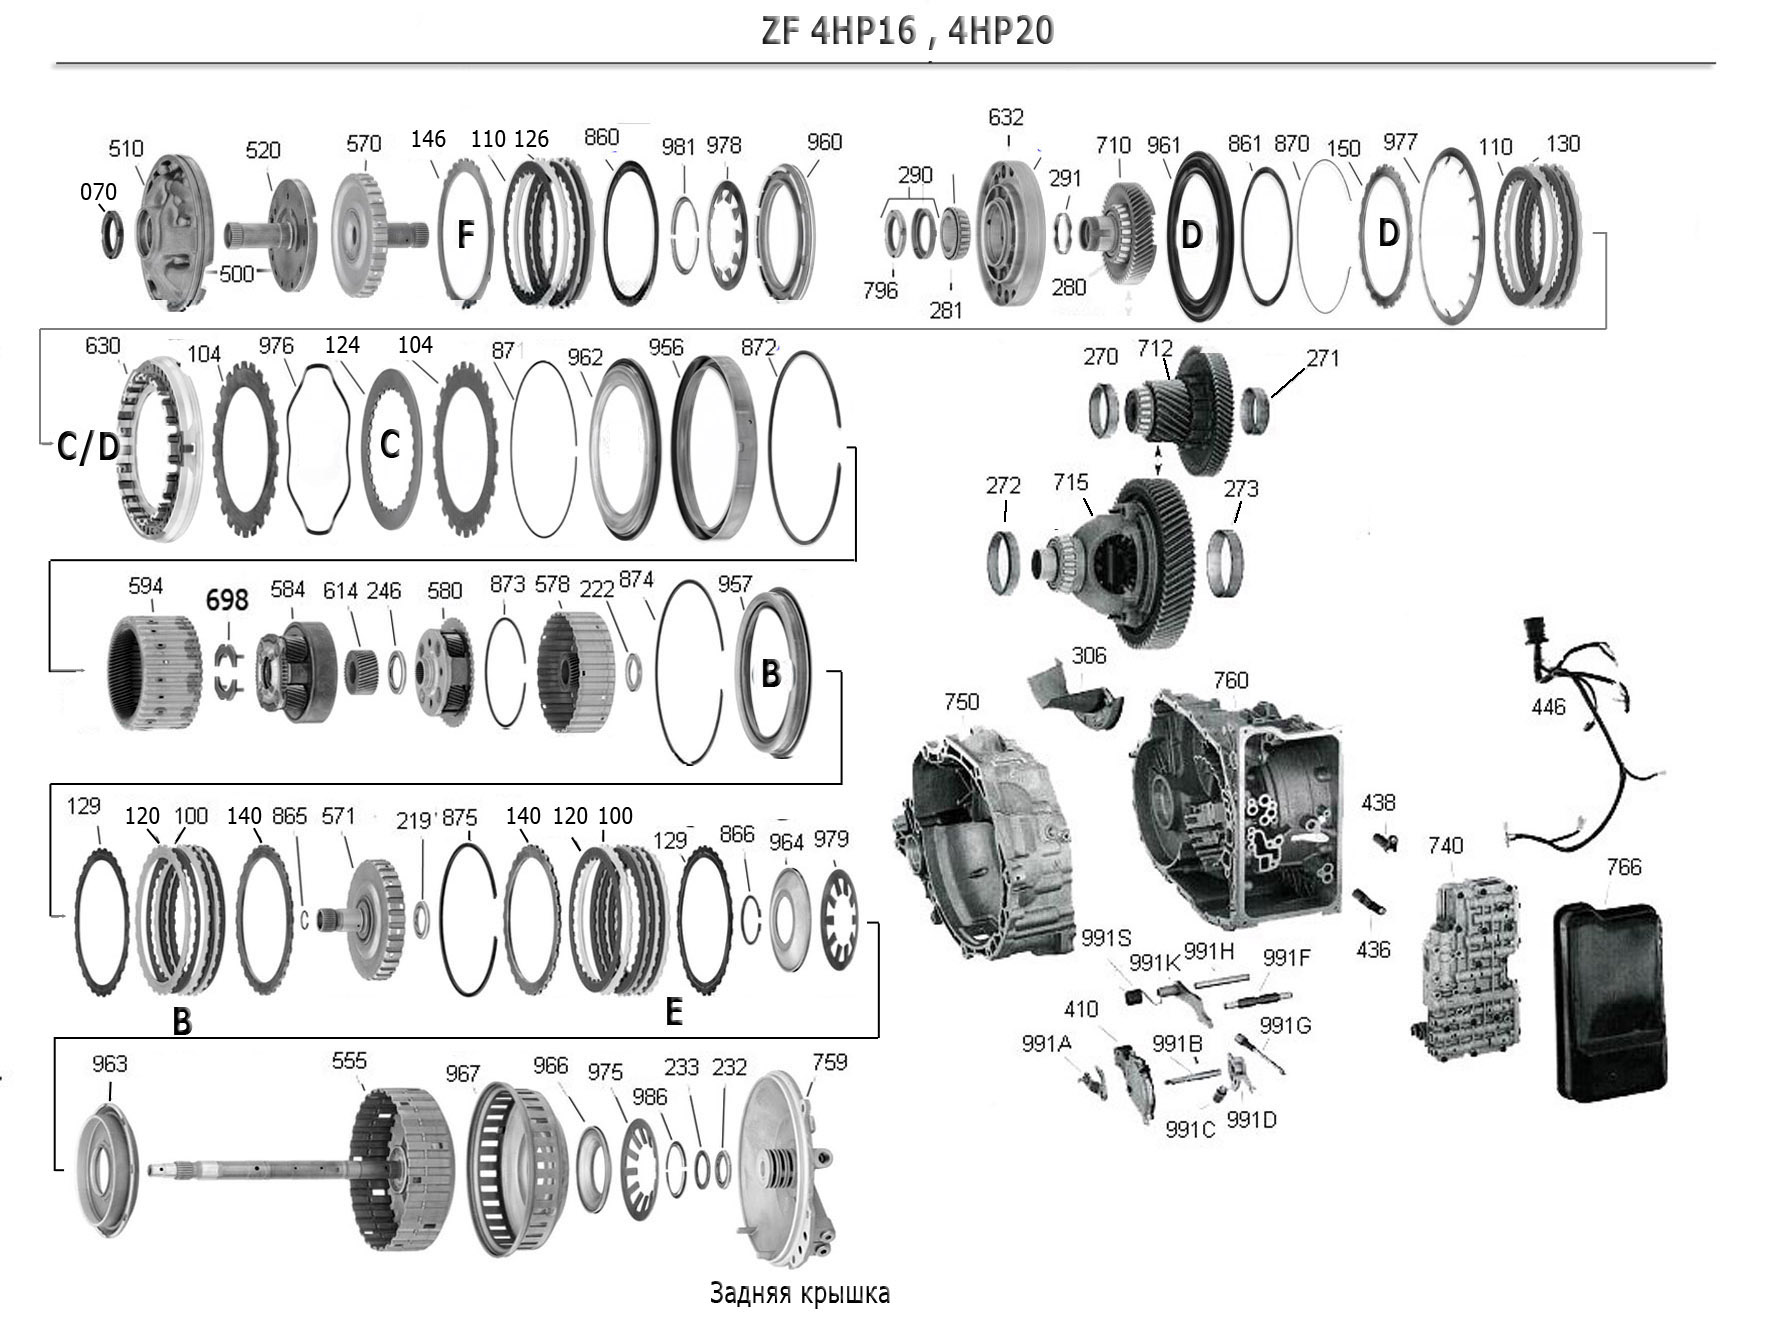 Transmission Repair Manuals Zf 4hp16